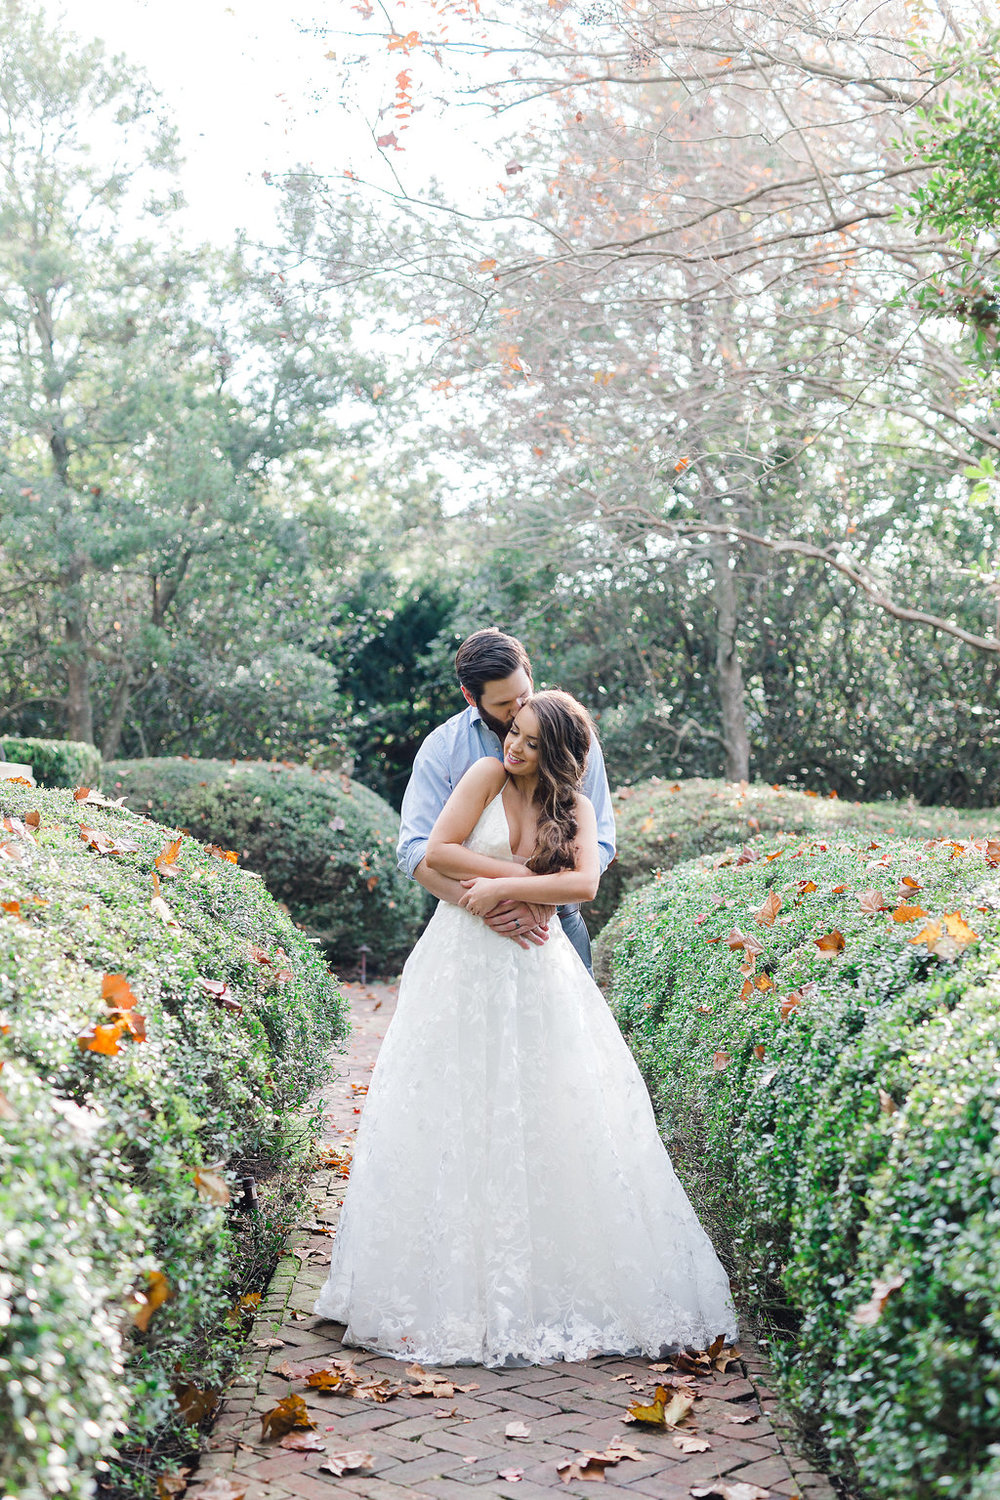 ships-of-the-sea-wedding-planner-savannah-florist-savannah-bridal-boutique-savannah-weddings-ivory-and-beau-savannah-event-designer-bridal-shop-blush-by-hayley-paige-fleur-de-lis-amy-and-tim-ivory-and-beau-danielle-george-photography-hustle-and-blow.JPG